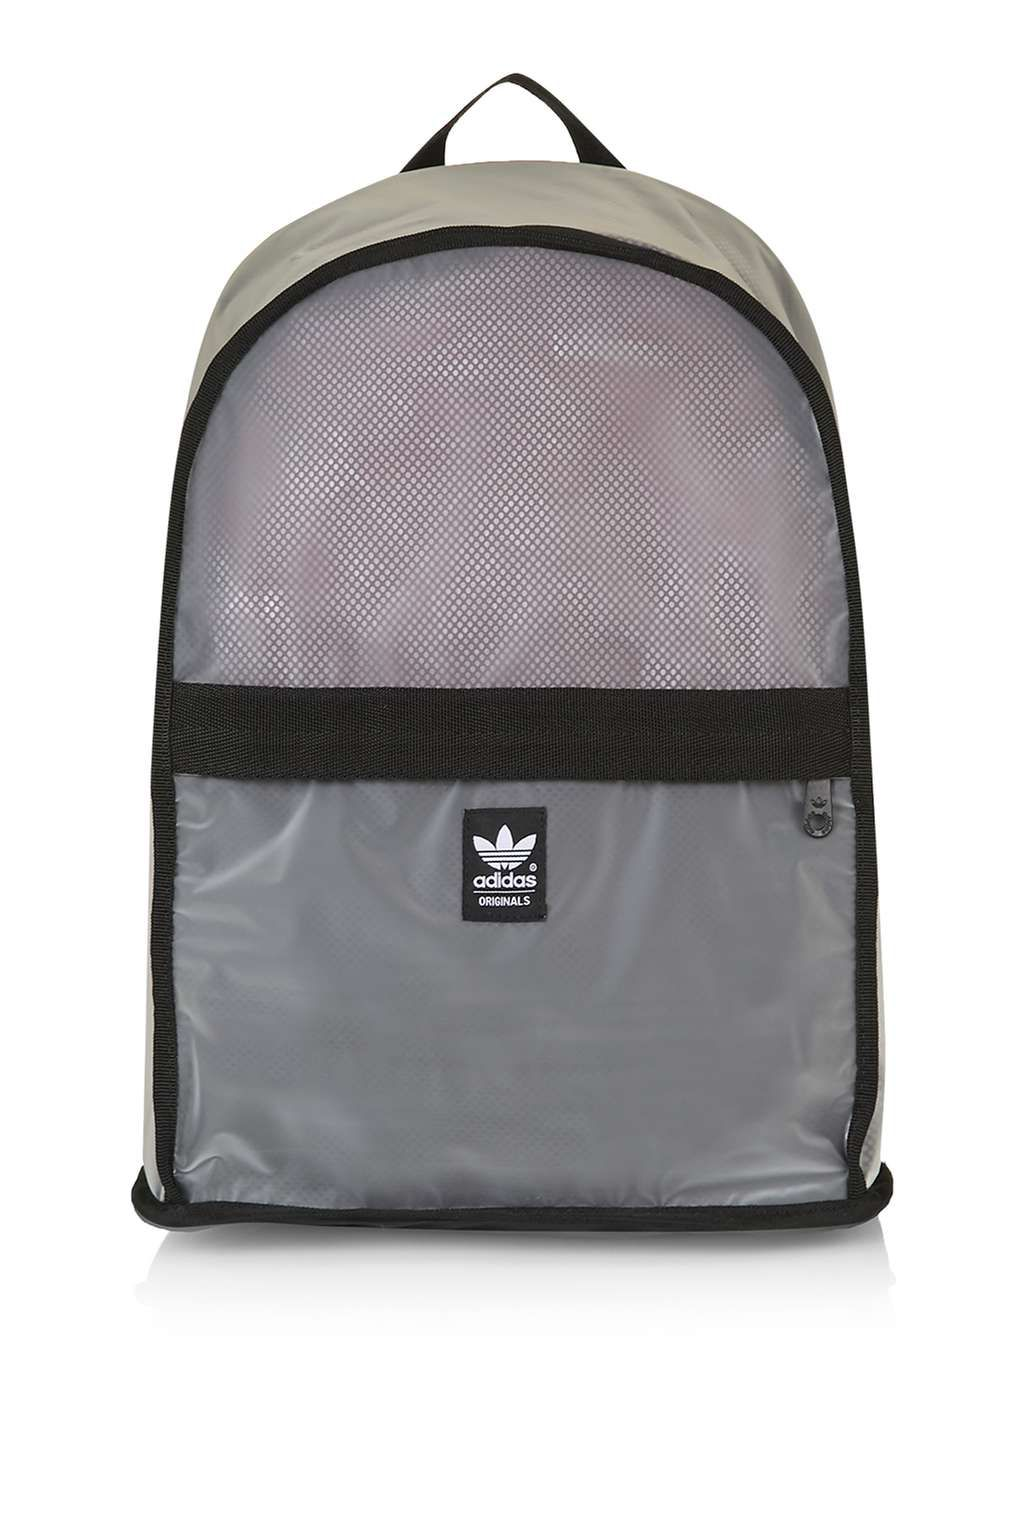 adidas basketball backpack